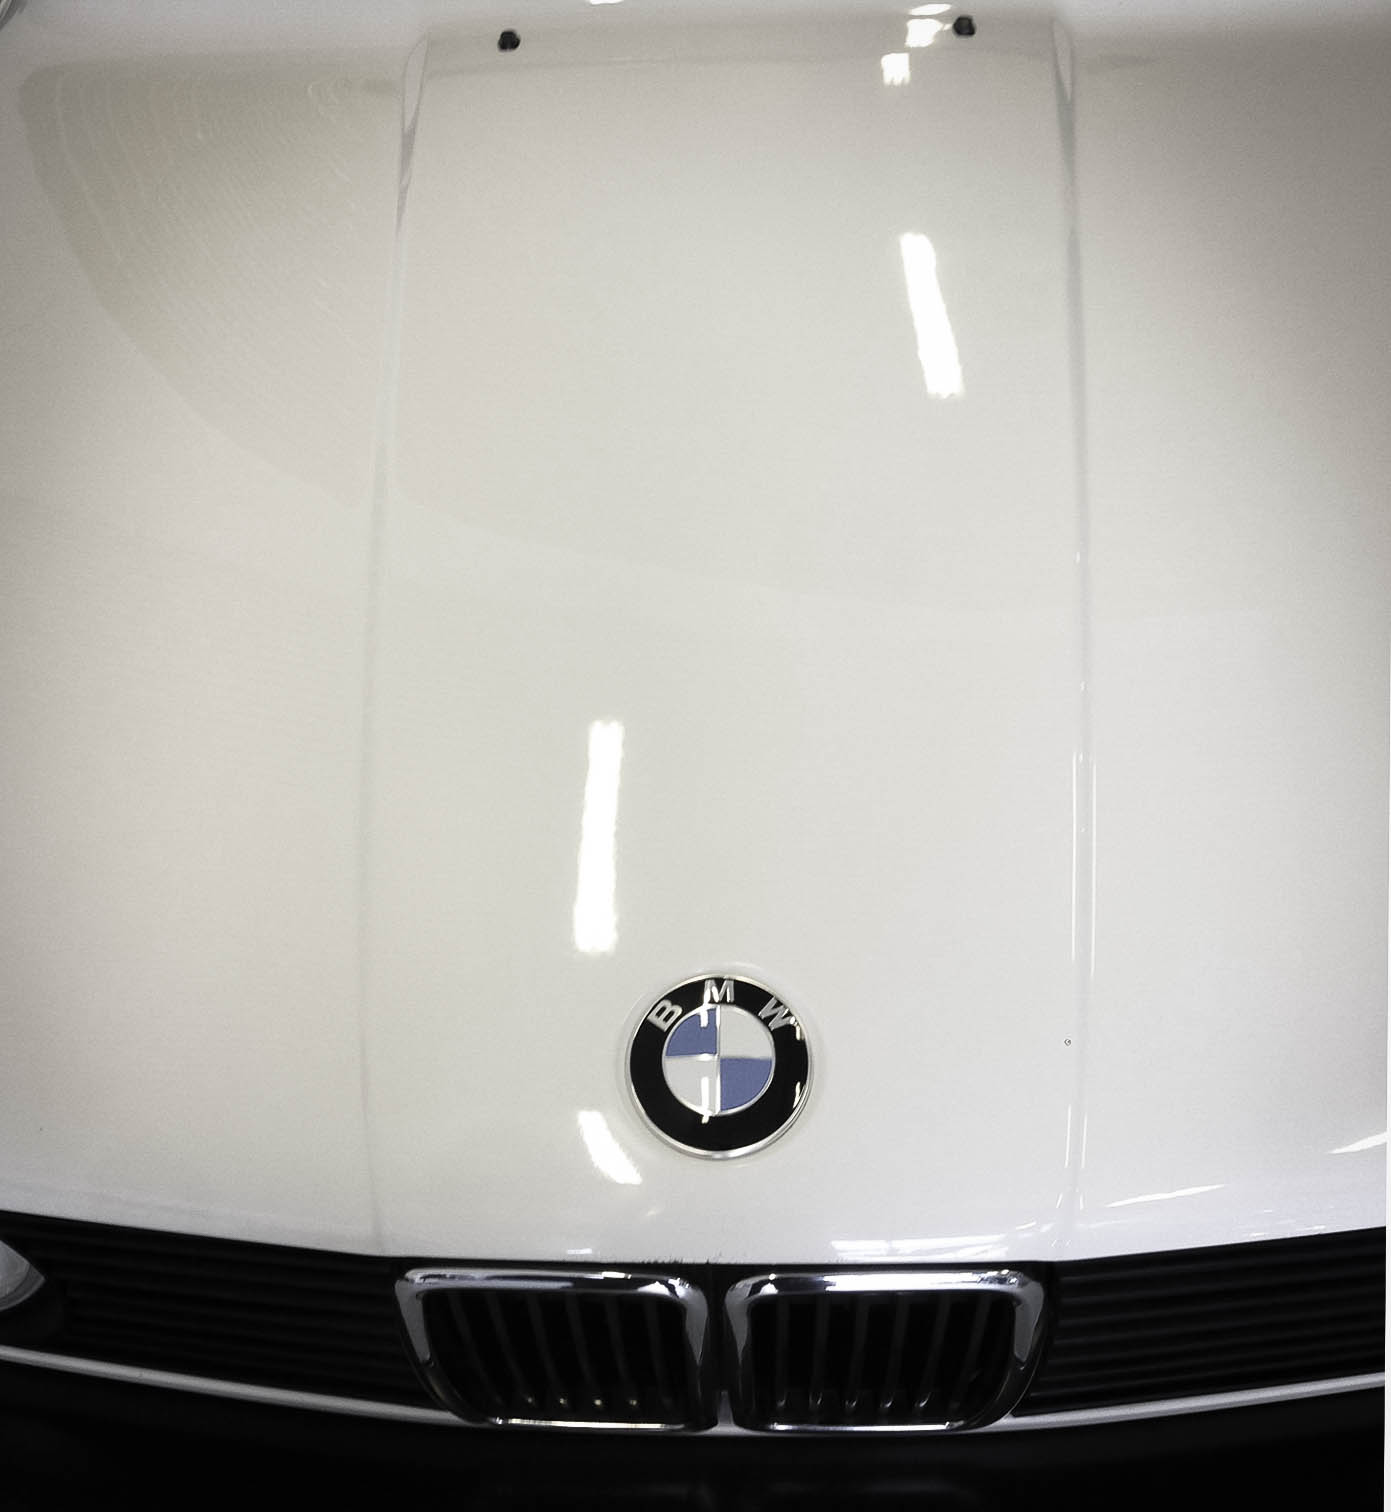 BMW 320i – Bonnet